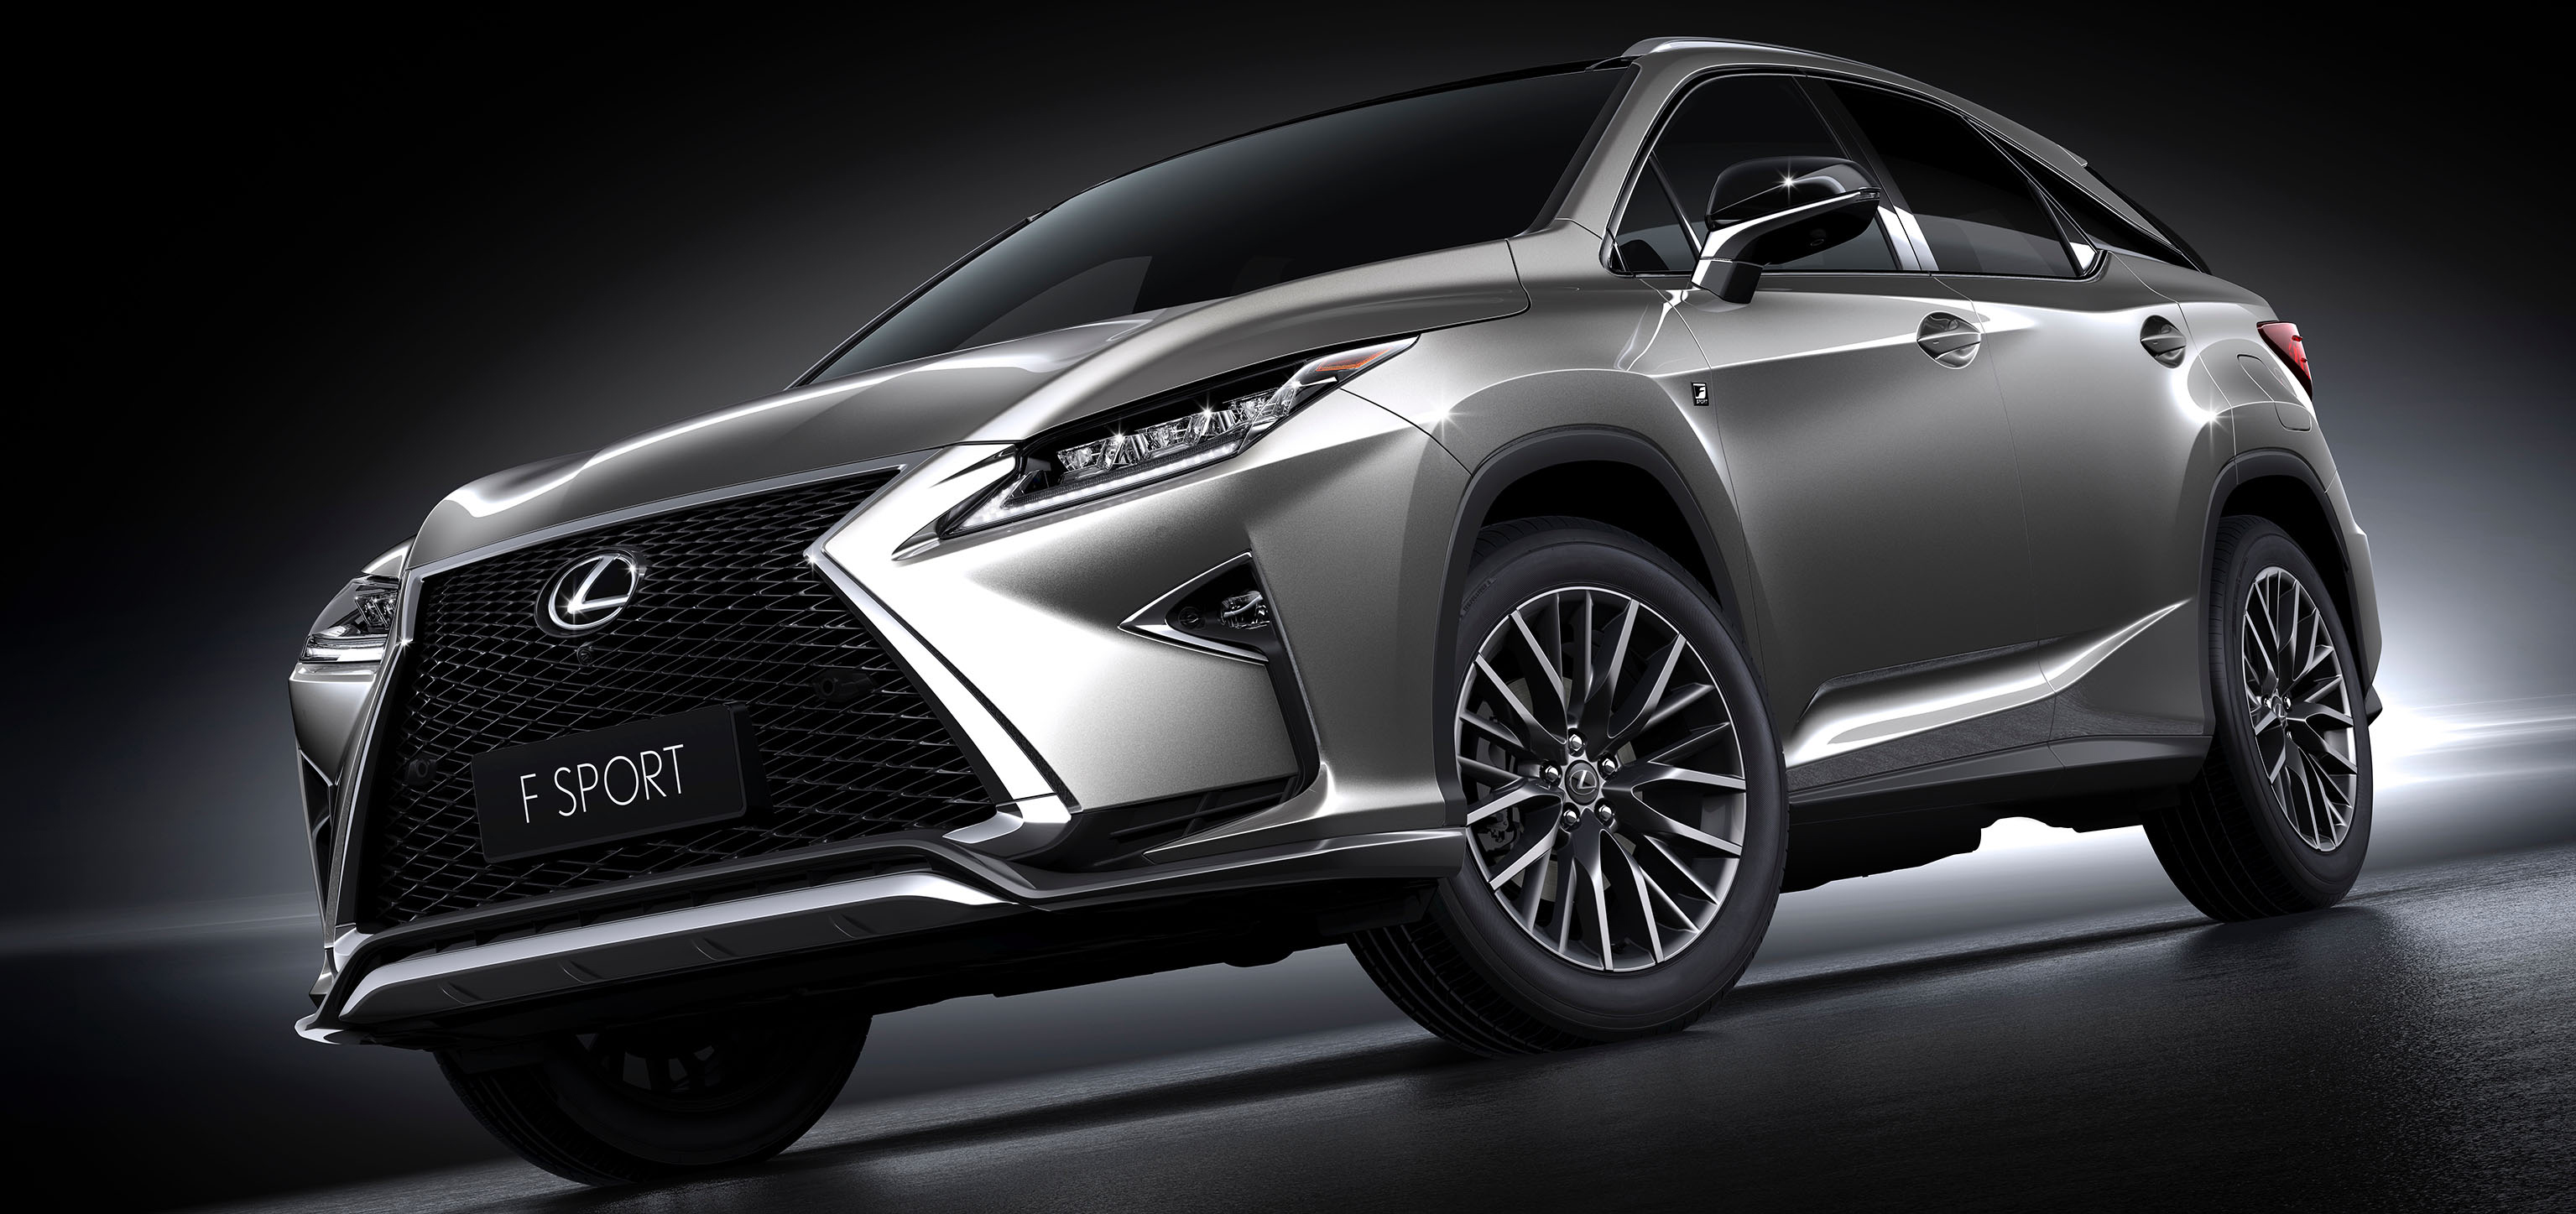 shanghai 2015 lexus rx 200t replaces the old rx 270. Black Bedroom Furniture Sets. Home Design Ideas